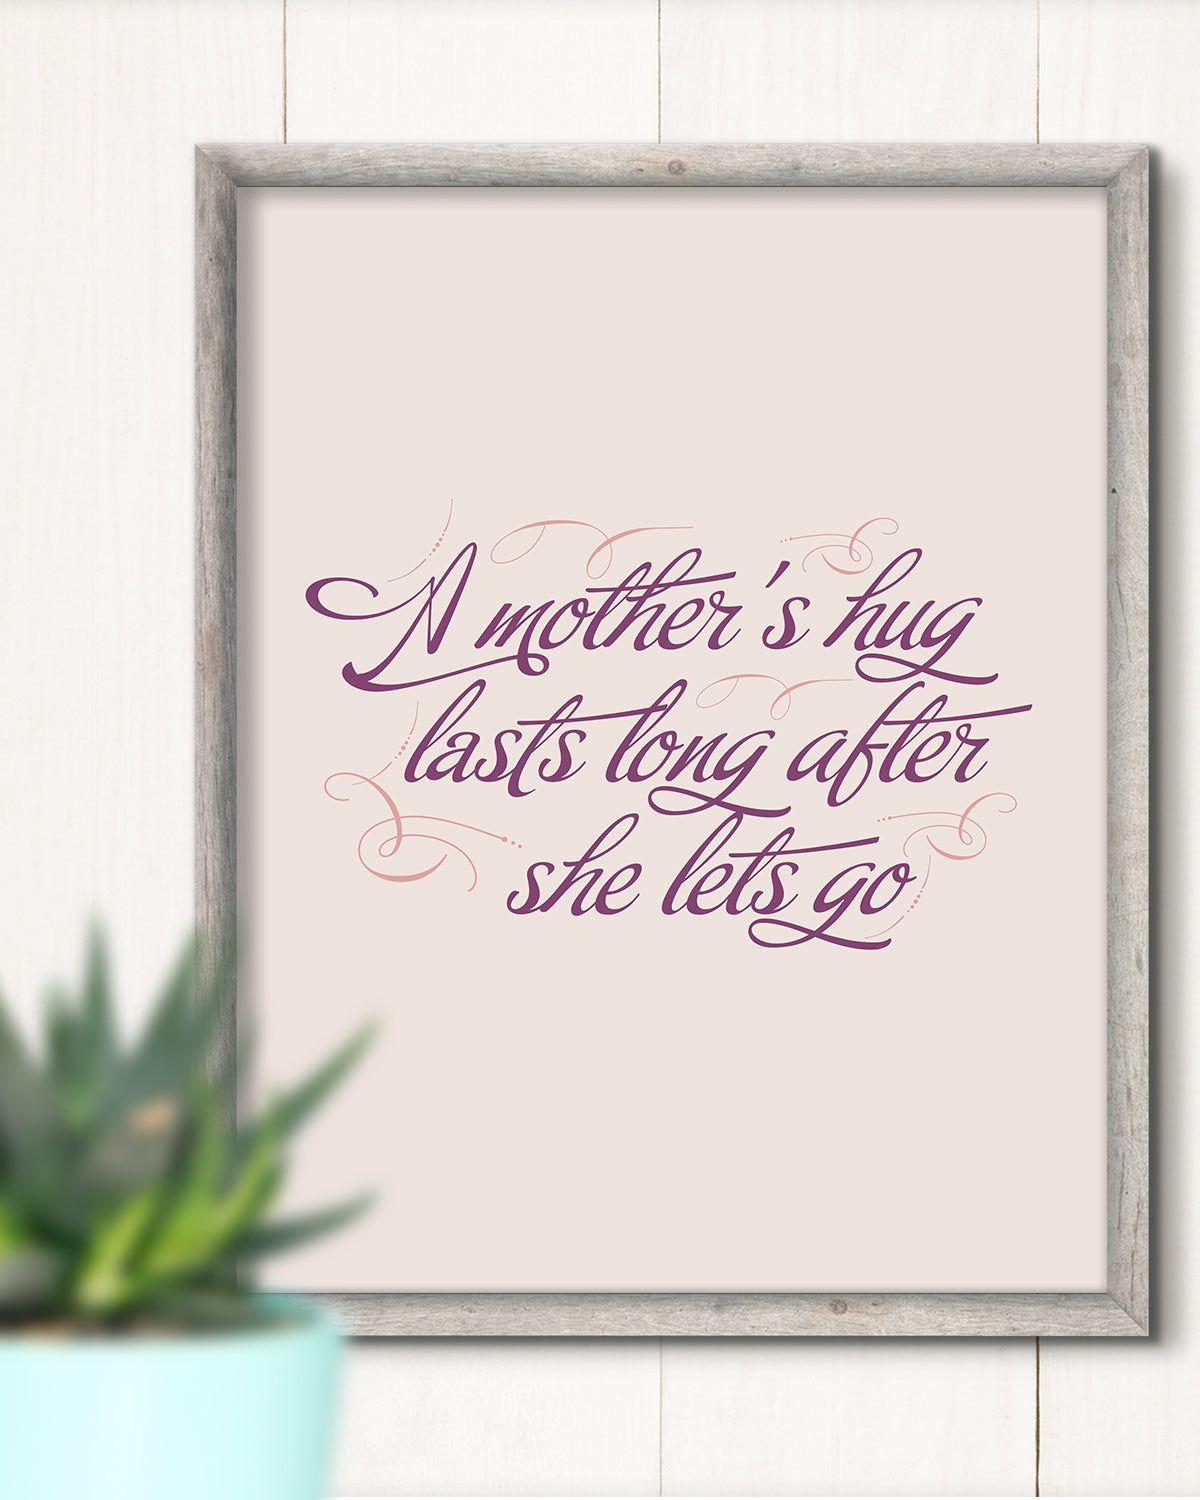 A Mother's Hug Lasts Long After She Lets Go - Wall Decor Art Print with Peach background - 8x10 unframed print for mothers